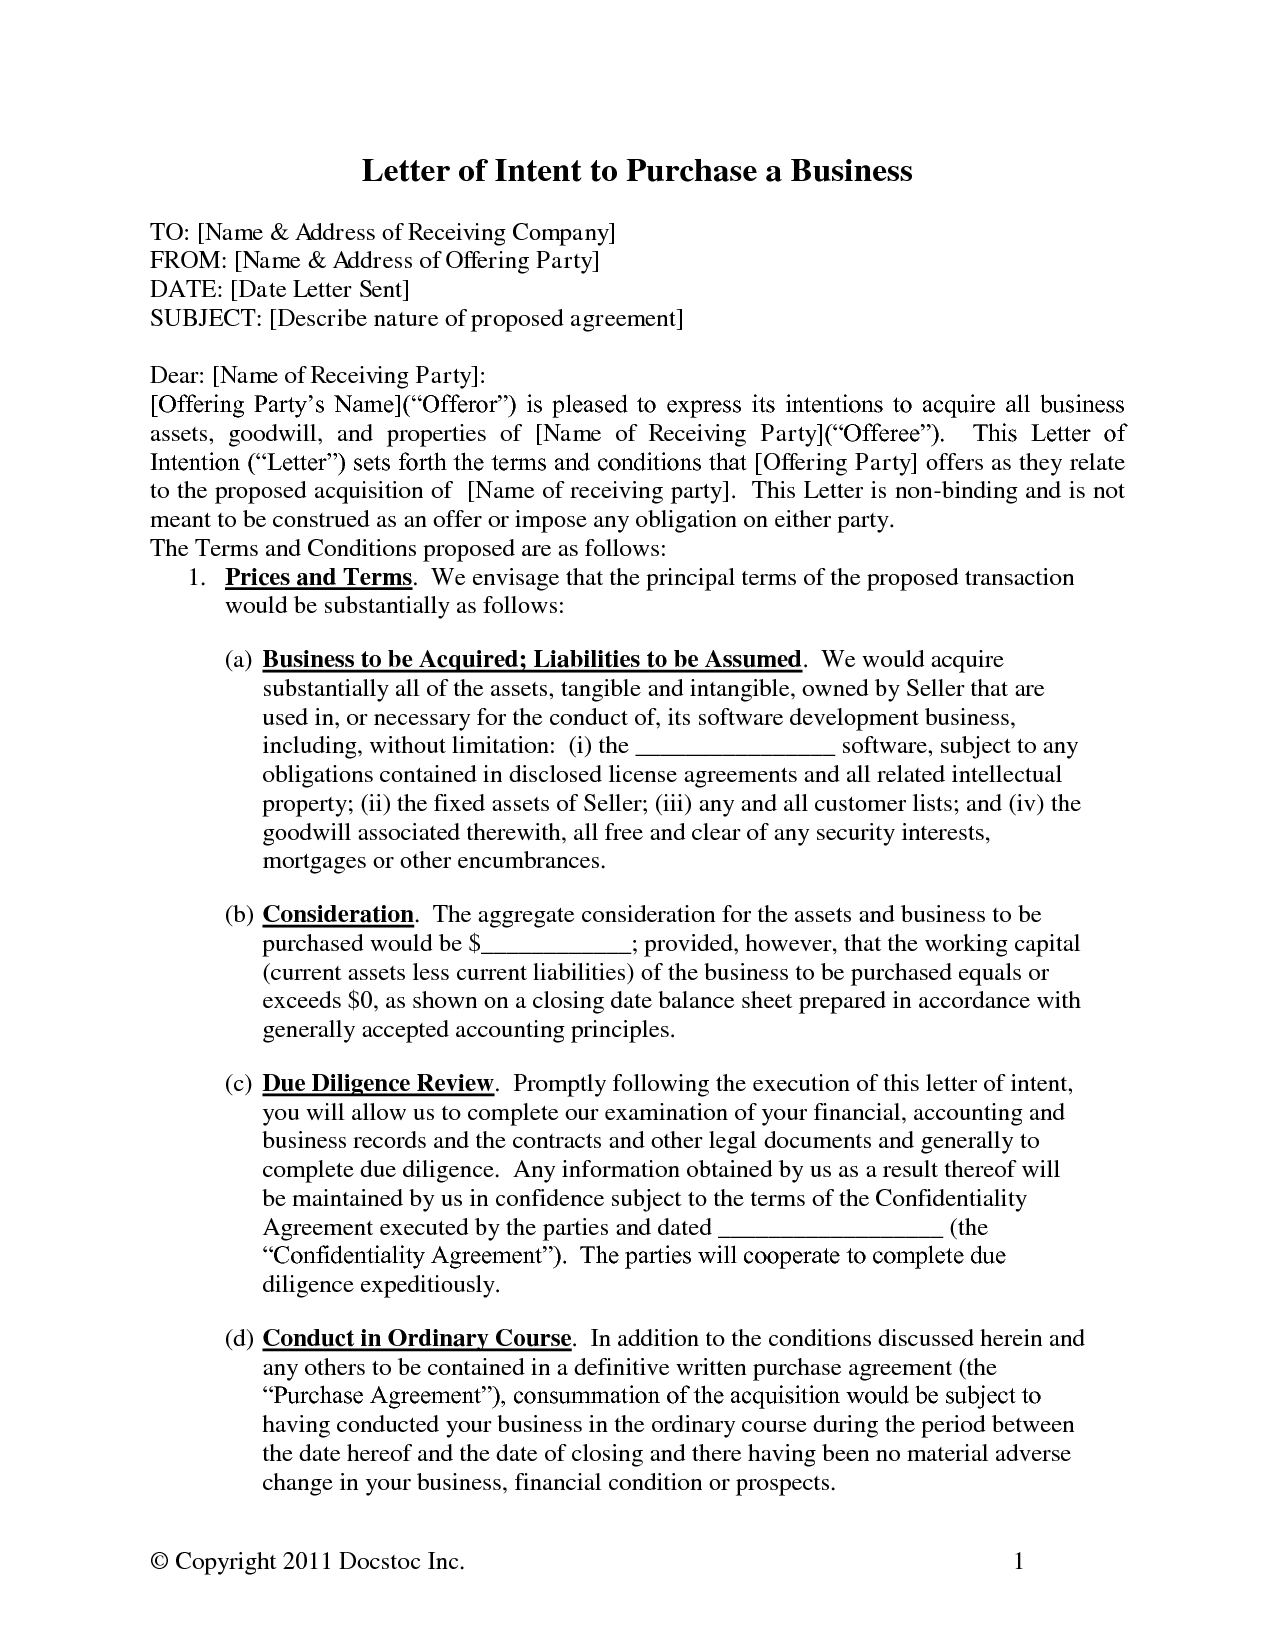 basic letter of intent template example-Acquisition Business Letters 19-f